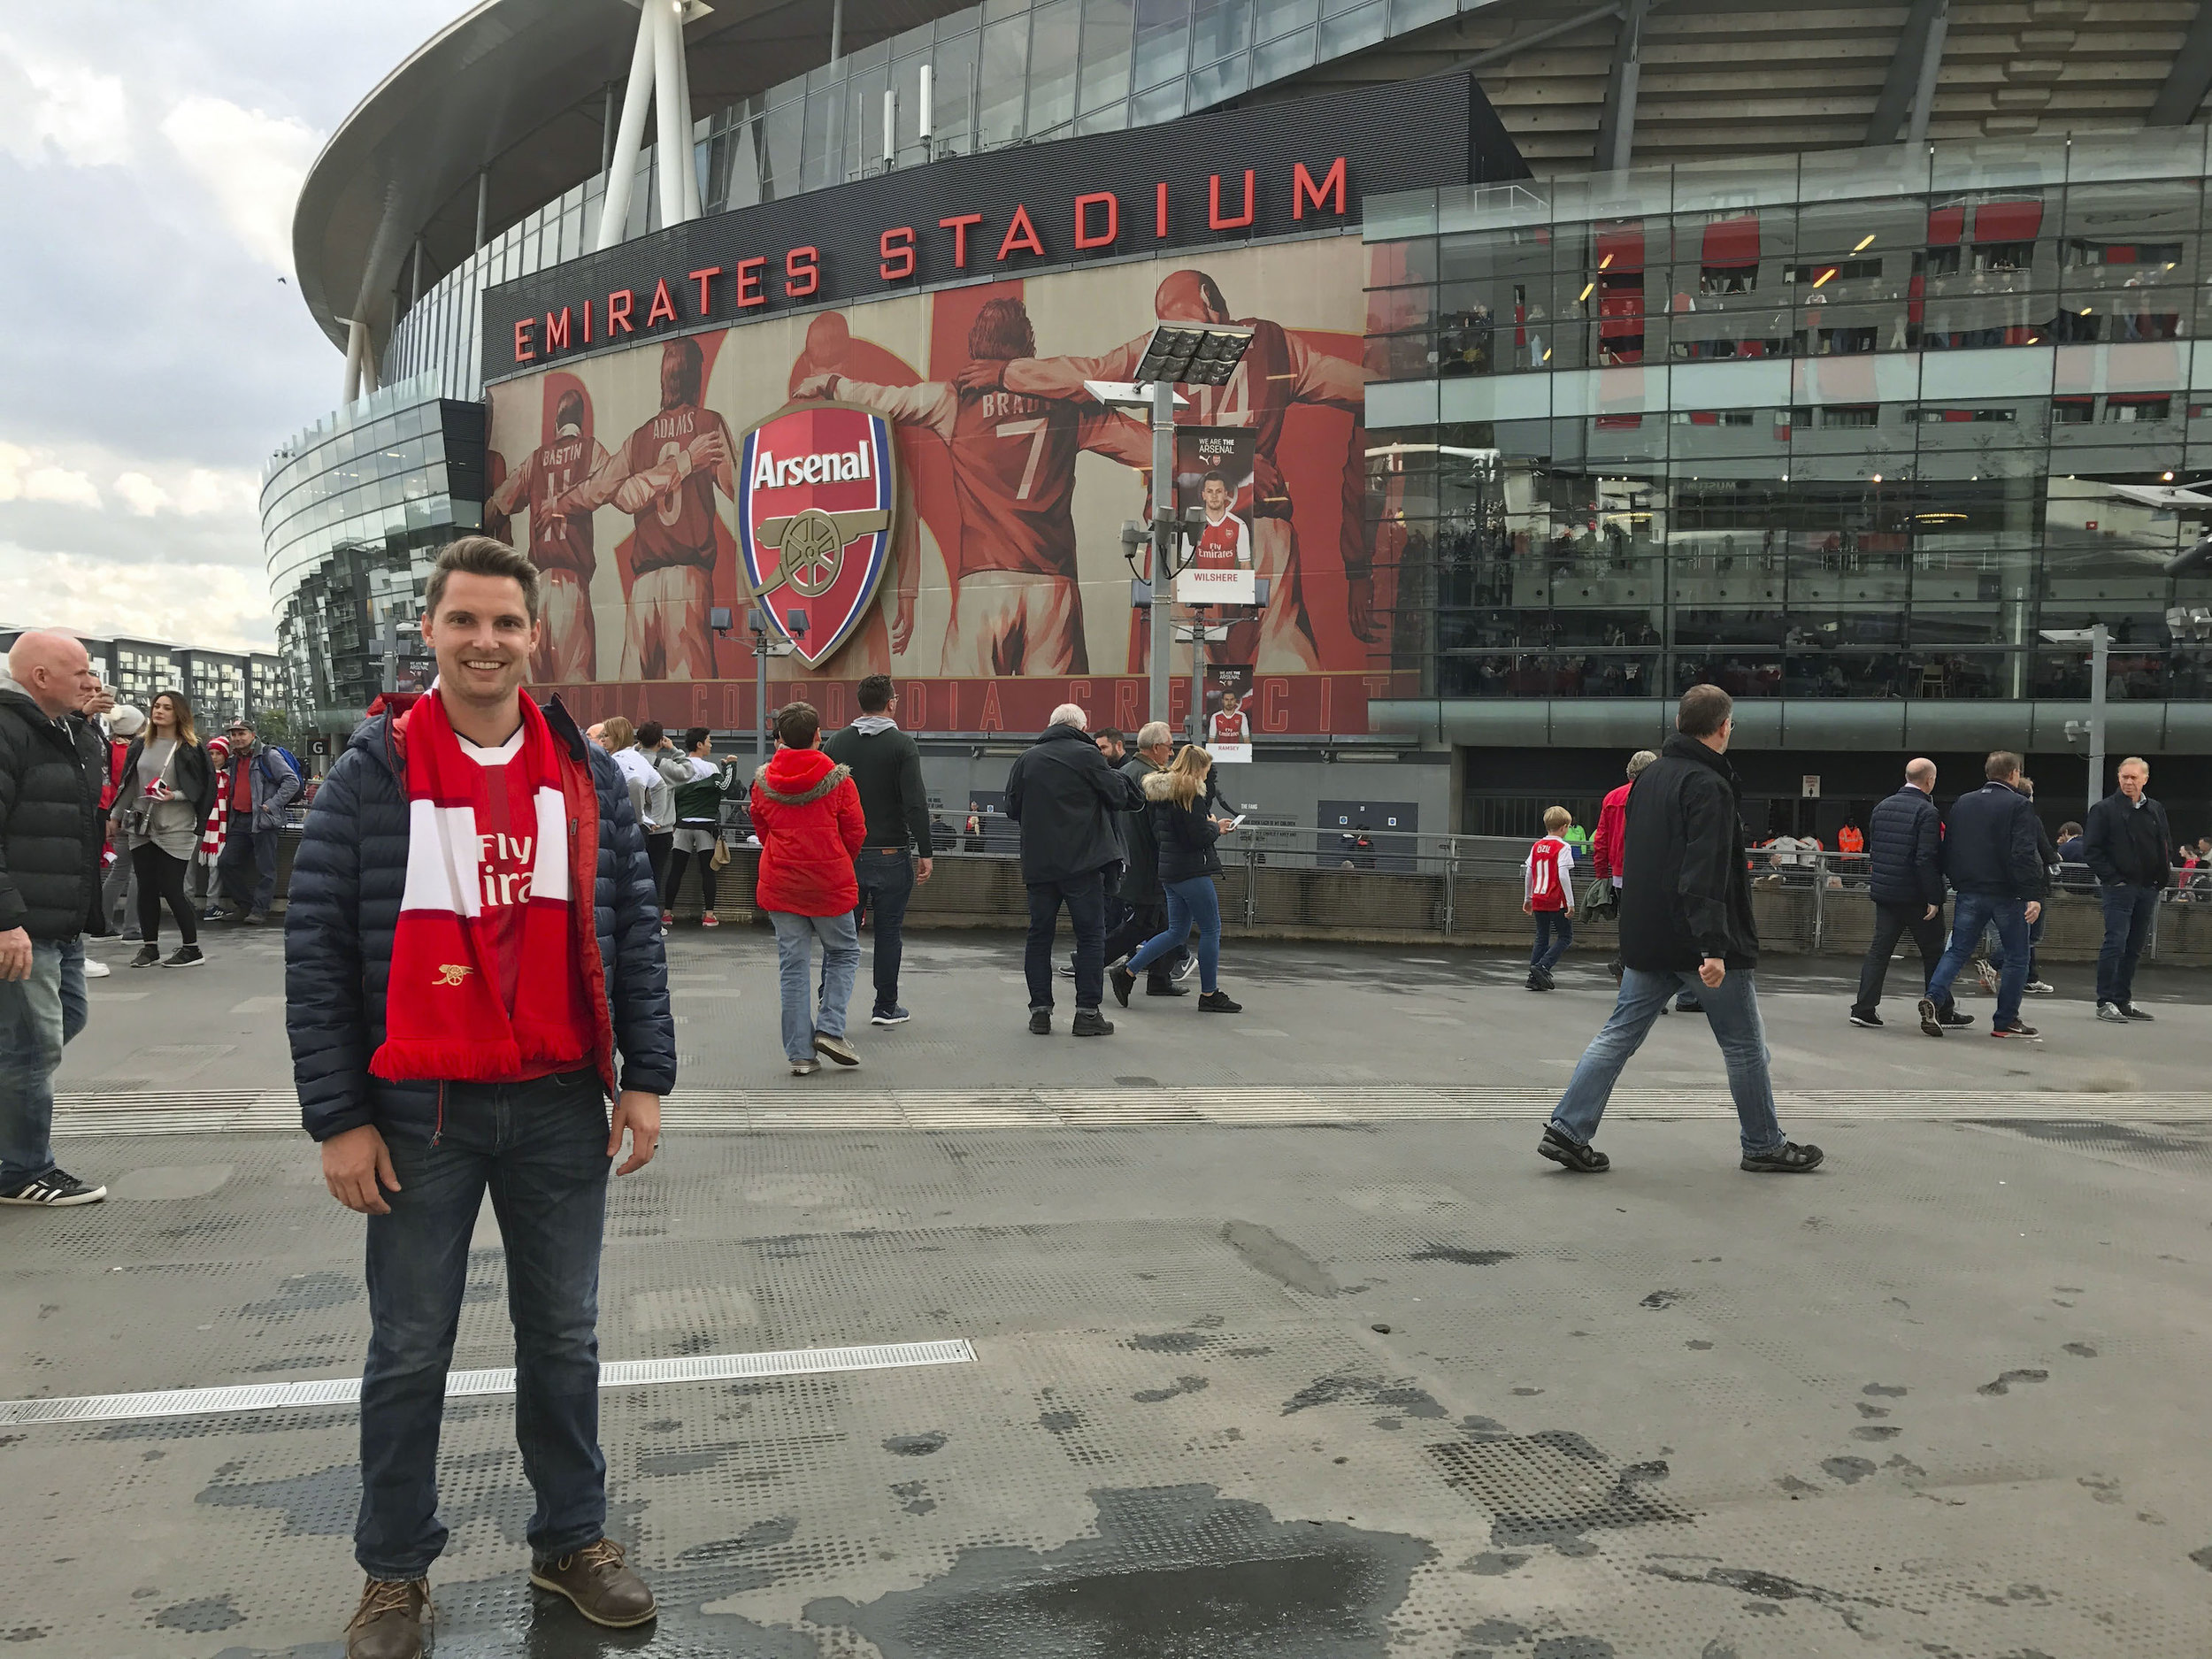 Rob outside of Emirates Stadium Pre Arsenal Match